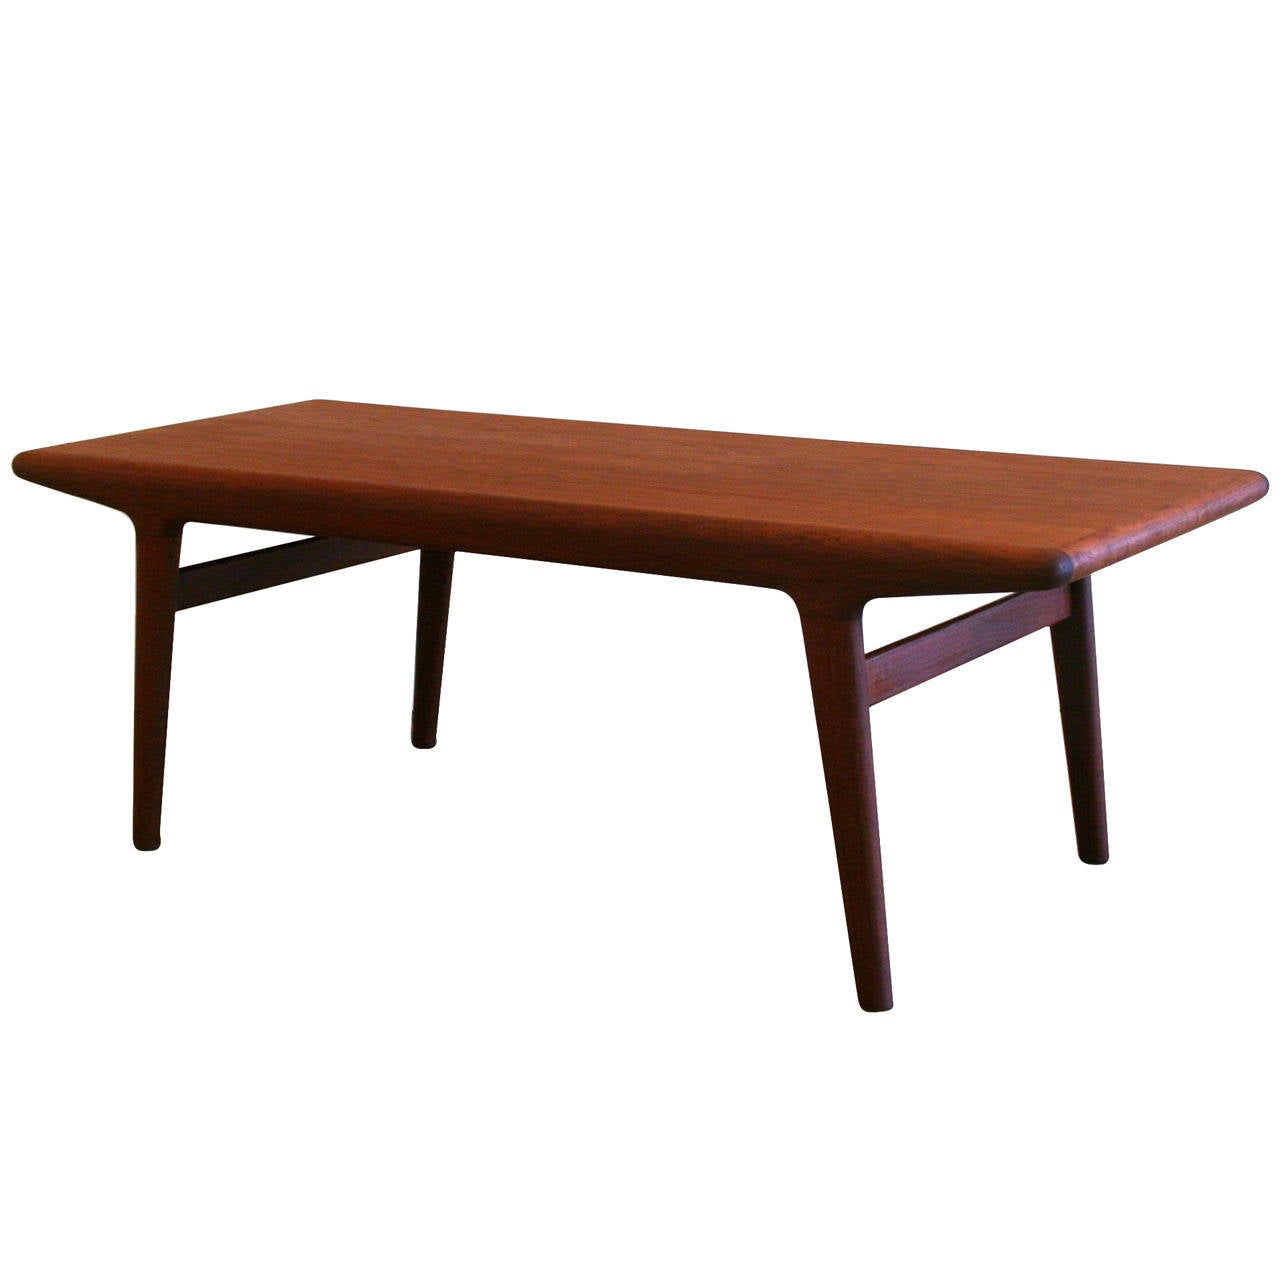 Vintage Danish Teak Coffee Table At 1stdibs